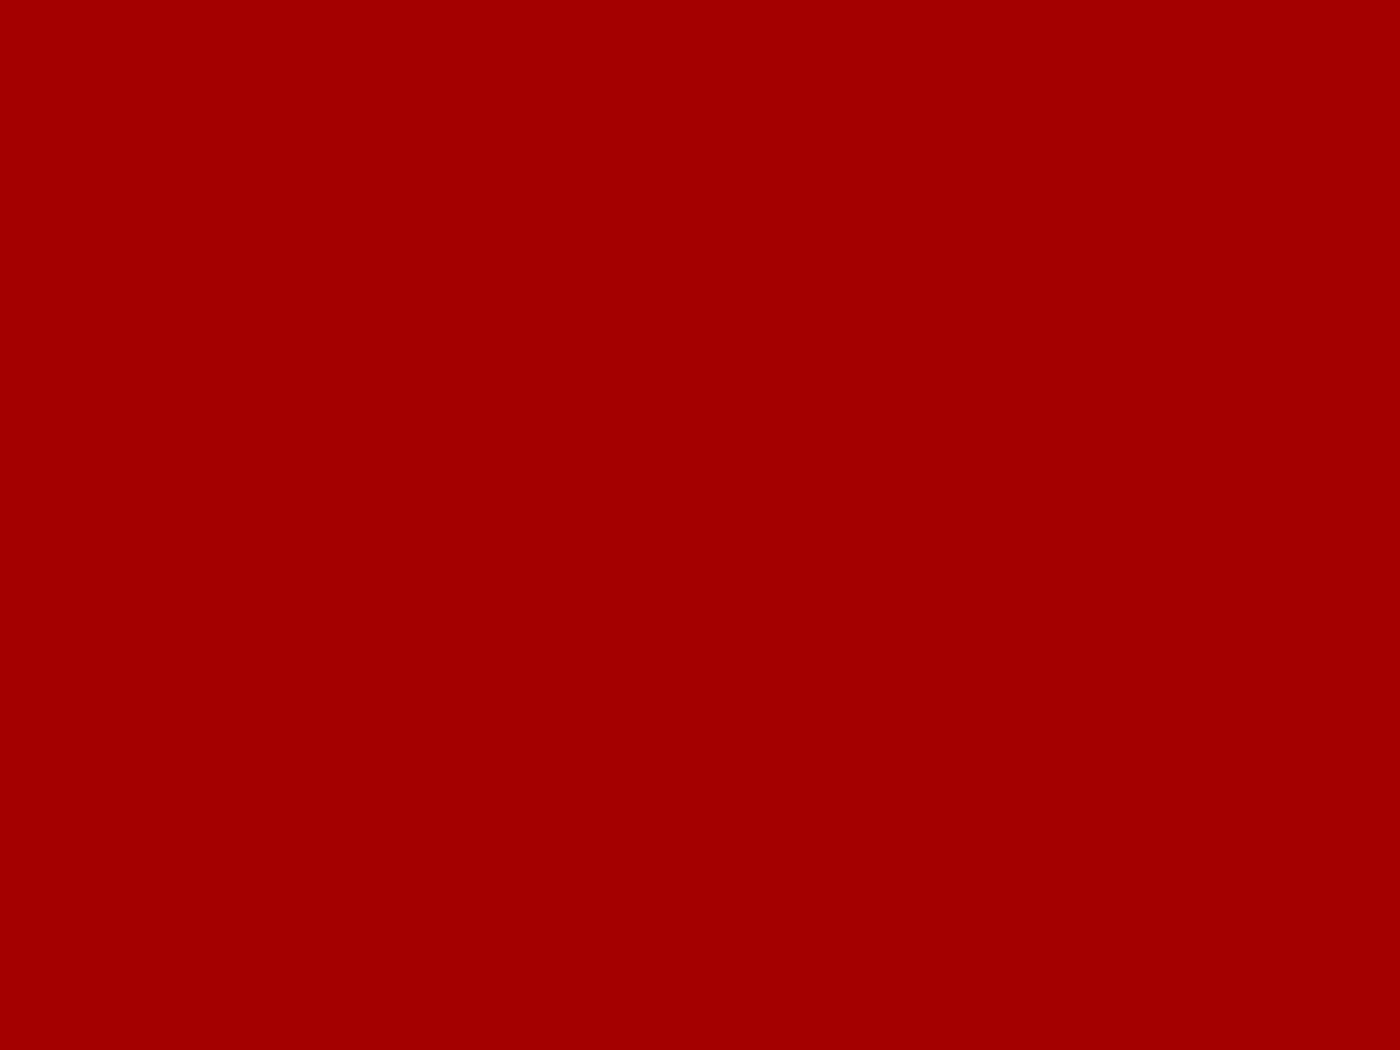 1400x1050 Dark Candy Apple Red Solid Color Background